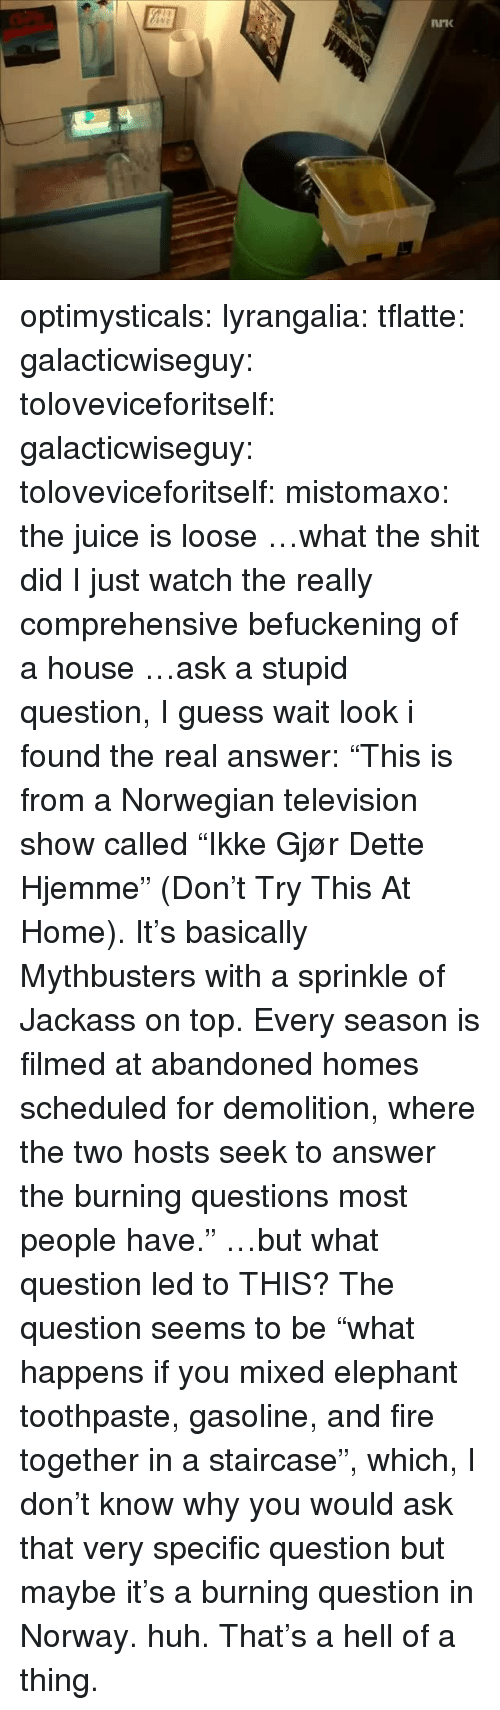 """gasoline: optimysticals:  lyrangalia:  tflatte:  galacticwiseguy:  toloveviceforitself:  galacticwiseguy:  toloveviceforitself:  mistomaxo:  the juice is loose  …what the shit did I just watch  the really comprehensive befuckening of a house  …ask a stupid question, I guess  wait look i found the real answer: """"This is from a Norwegian television show called """"Ikke Gjør Dette Hjemme"""" (Don't Try This At Home). It's basically Mythbusters with a sprinkle of Jackass on top. Every season is filmed at abandoned homes scheduled for demolition, where the two hosts seek to answer the burning questions most people have.""""  …but what question led to THIS?  The question seems to be""""what happens if you mixed elephant toothpaste, gasoline, and fire together in a staircase"""", which, I don't know whyyou would ask that very specific question but maybe it's a burning question in Norway.  huh. That's a hell of a thing."""